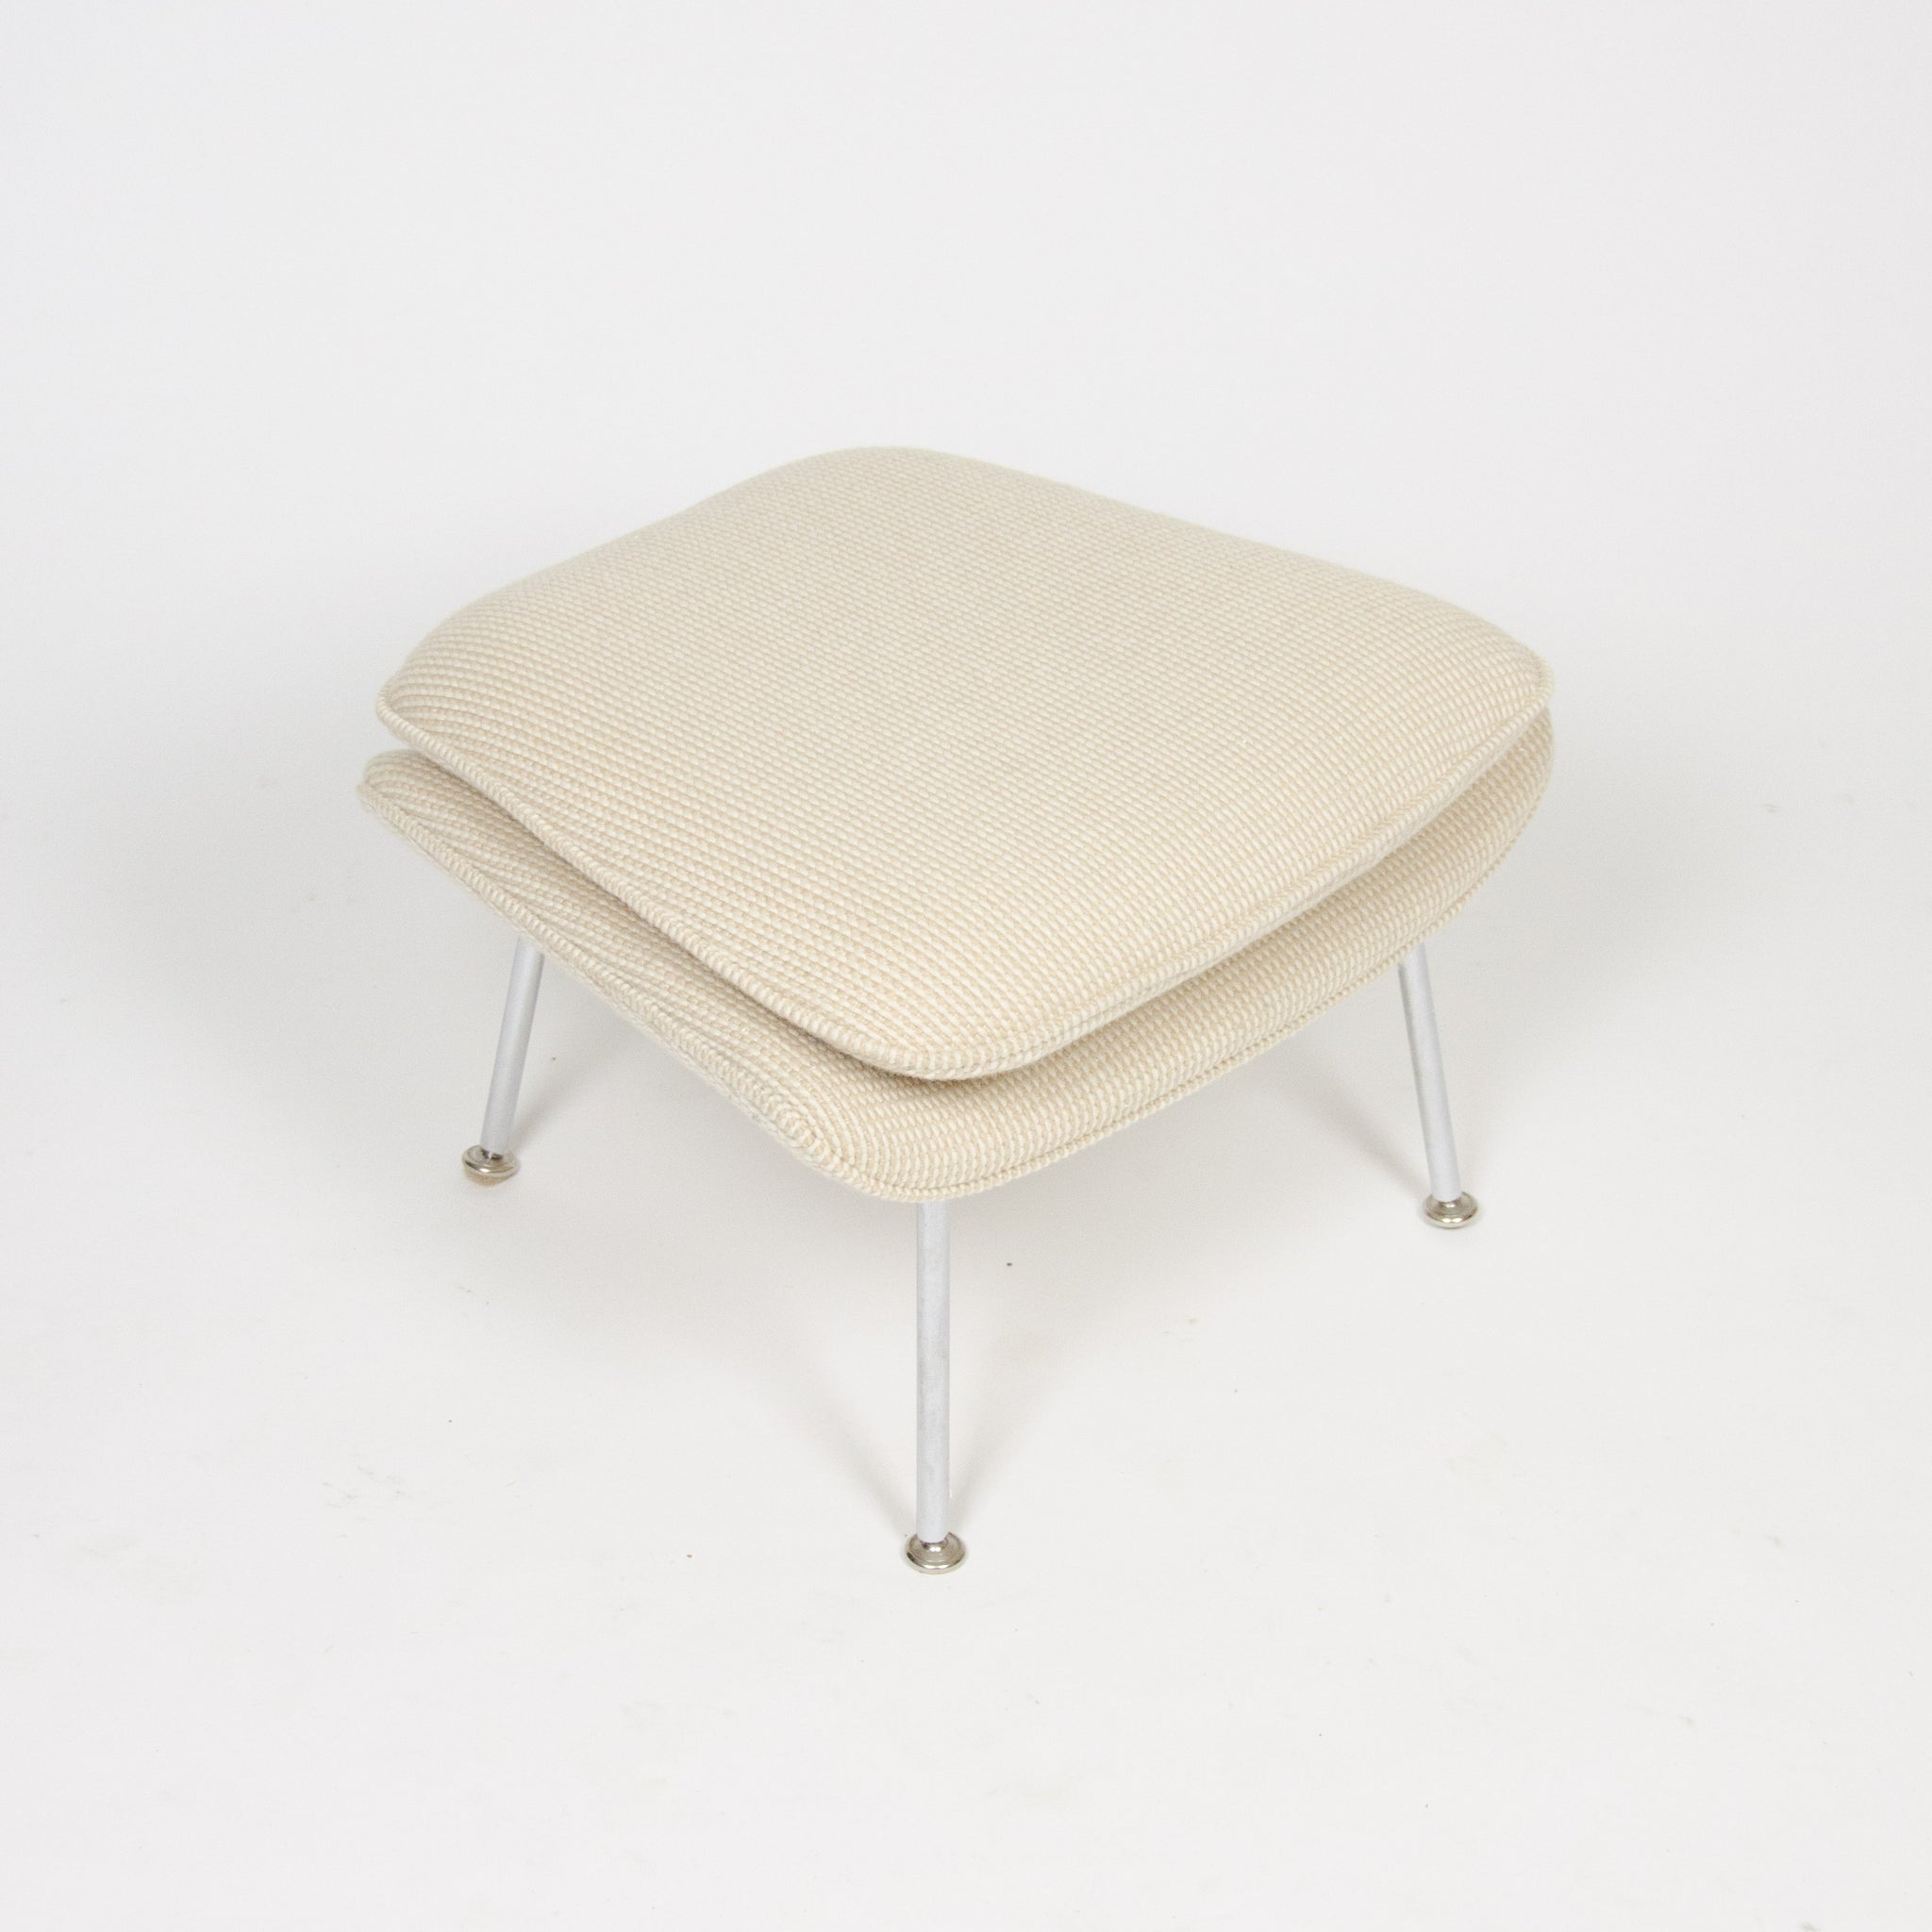 SOLD Eero Saarinen Womb Chair Knoll International Mid-Size Ivory Cato Fabric MINT!